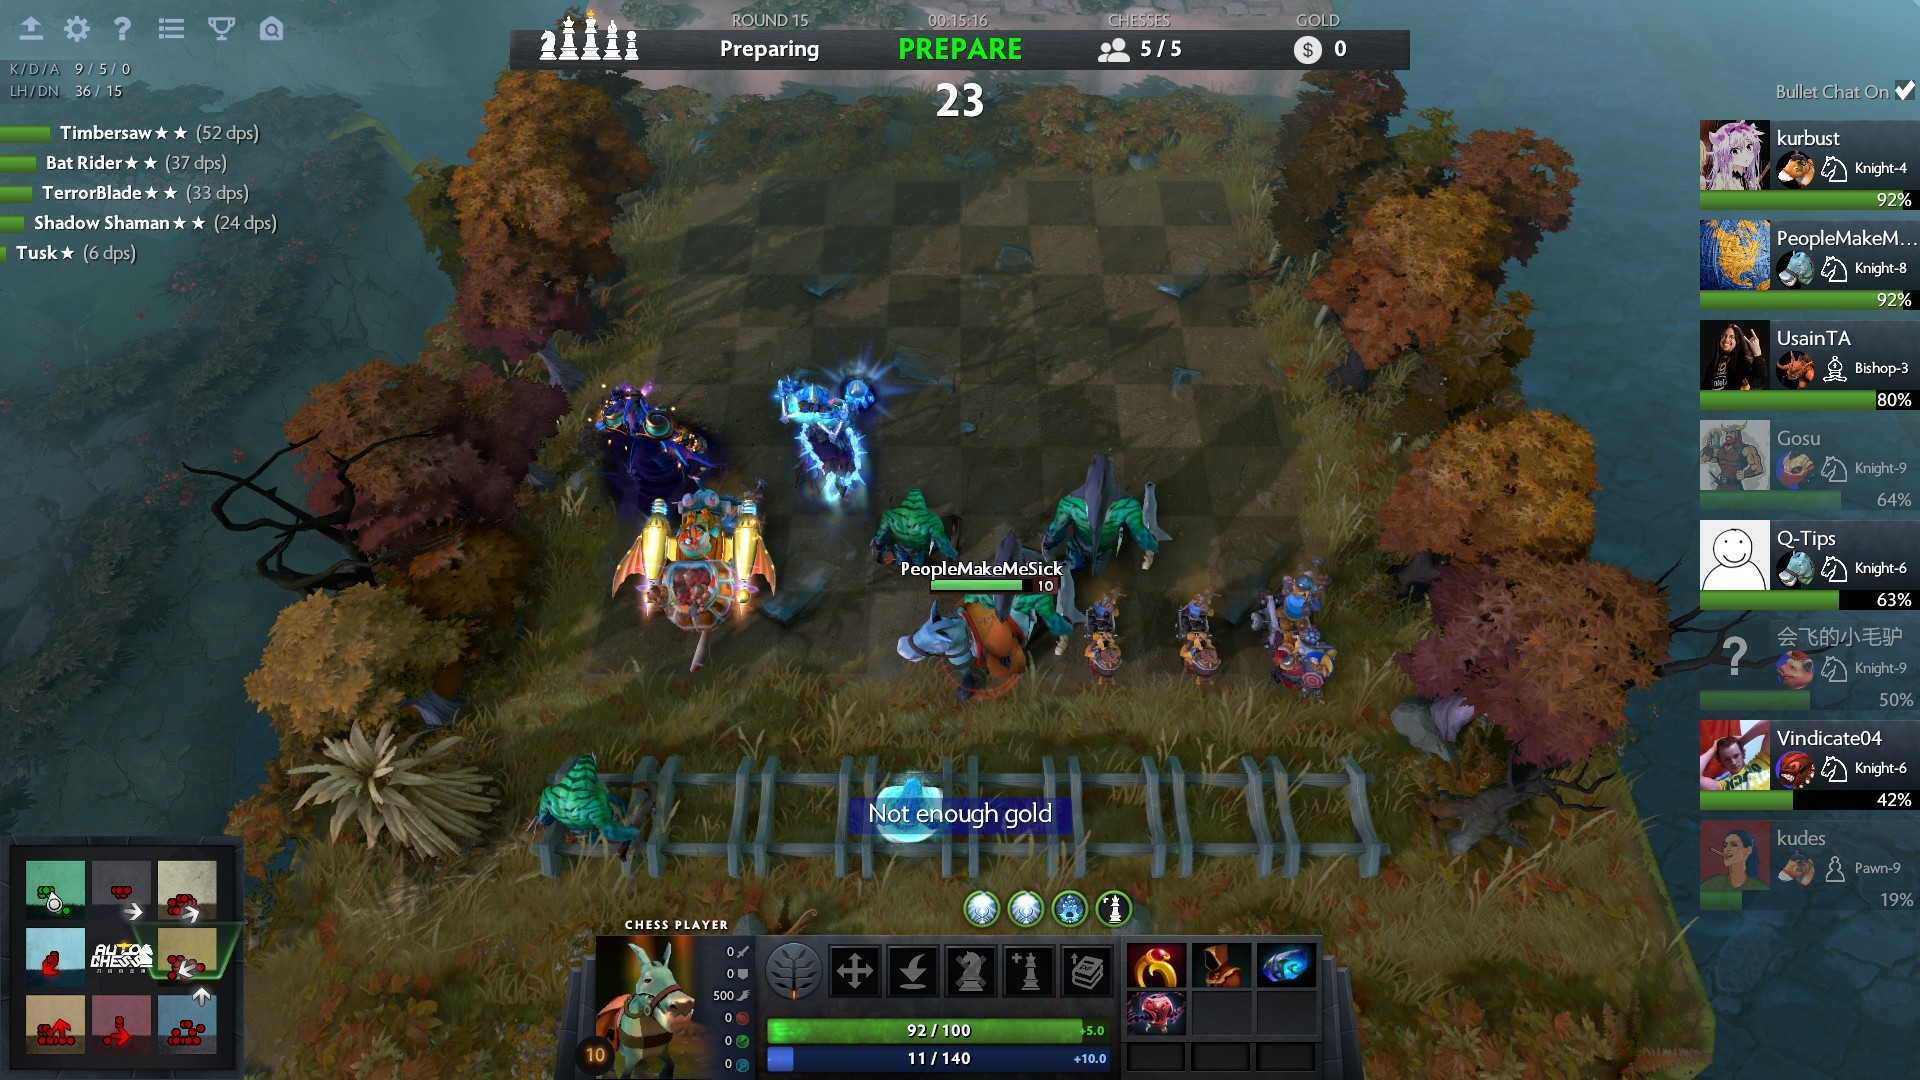 Dota 2: An explosive amount of cheaters have found their way into